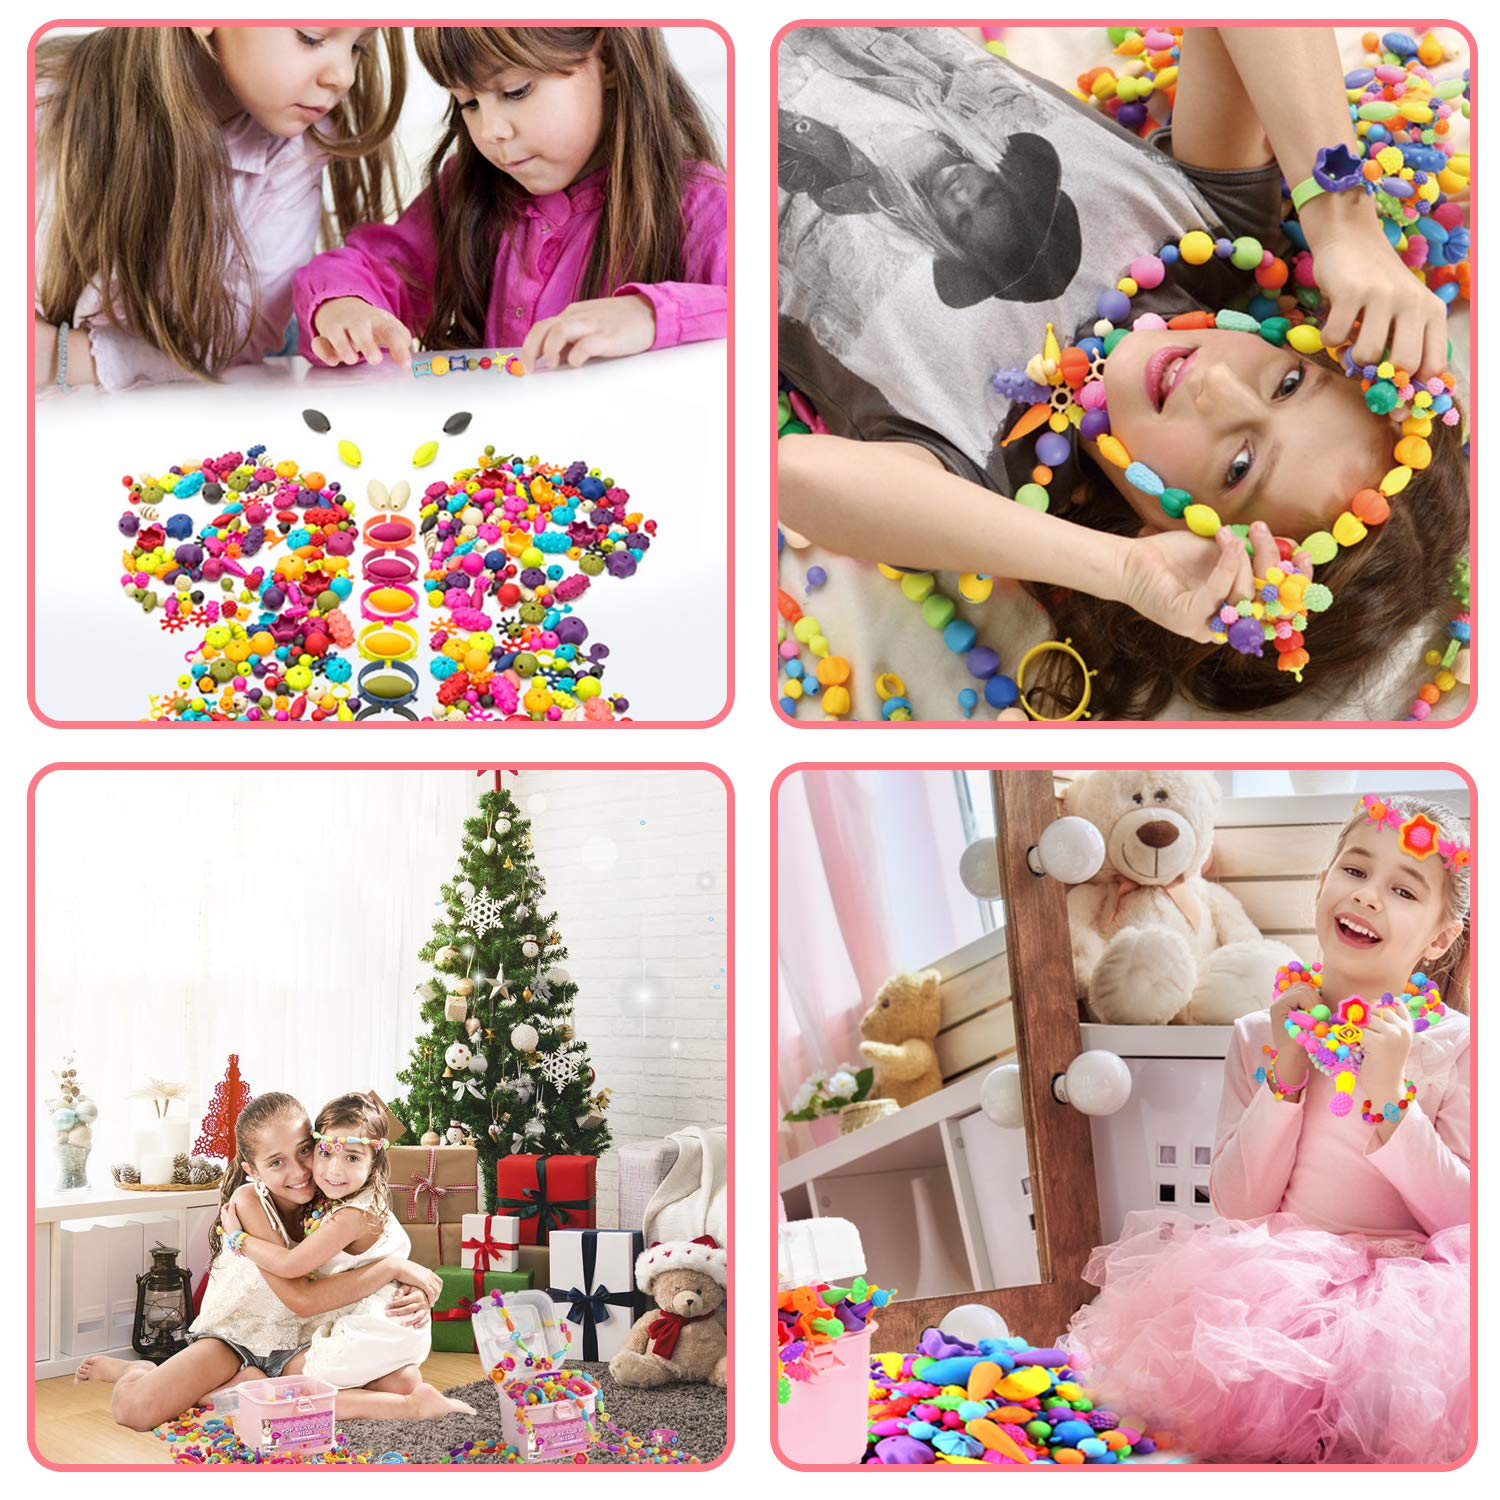 100 PCS Pop Snap Beads Jewelry Making Kit Beads for Kids Girl Toys for 3 4 5 6 7 8 9 Year Old